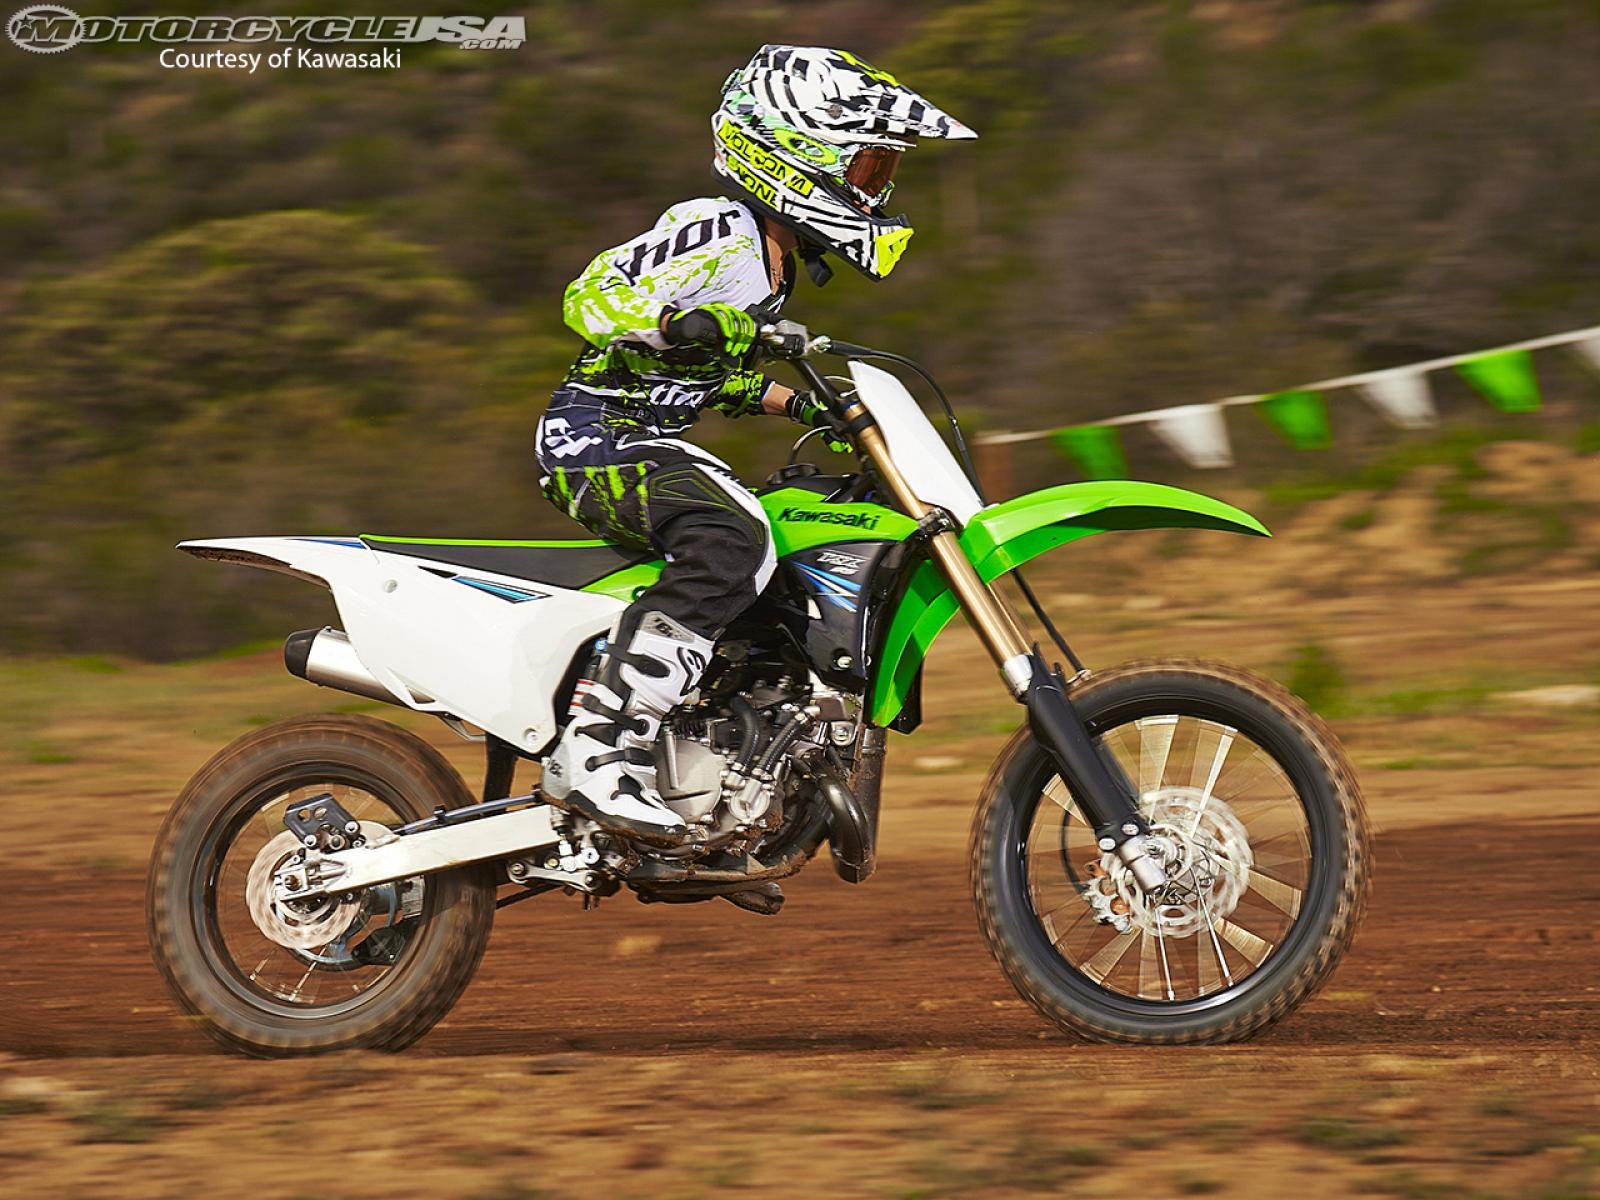 Kawasaki Kx 85 Wiring Diagram - All Wiring Diagram on kawasaki ksr 125, kawasaki klx110l review, kawasaki side by side, kawasaki dirt bikes, 2014 kawasaki 110l, kawasaki mx, kawasaki kx65,